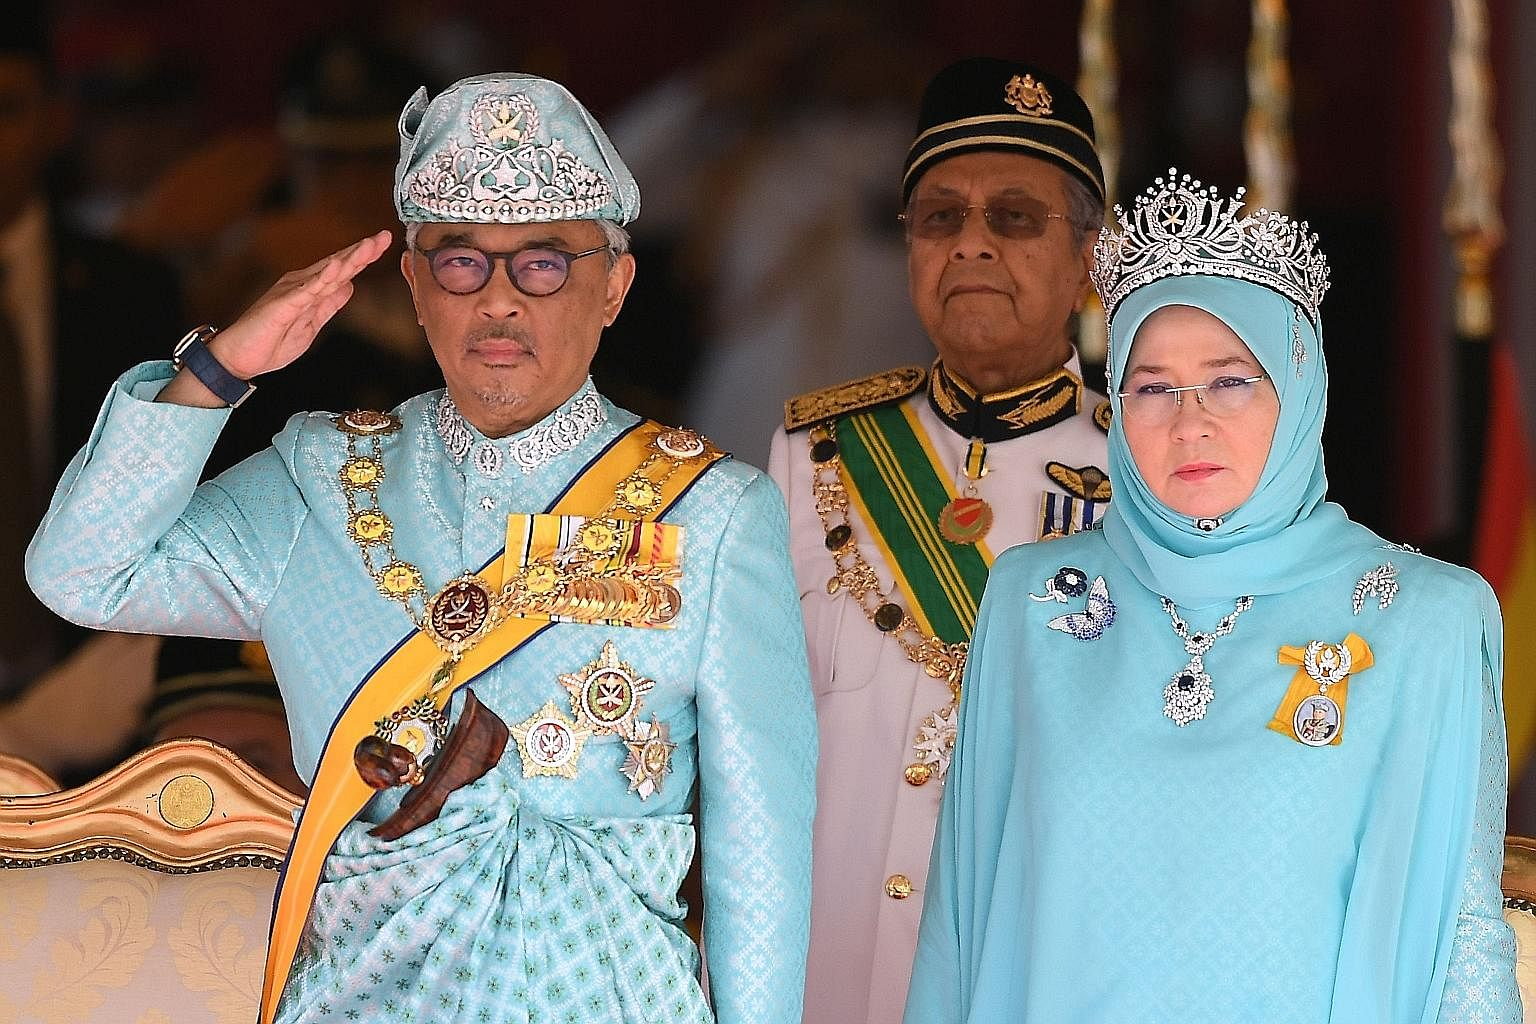 Pahang Sultan Abdullah Ri'ayatuddin was given a grand welcome in Parliament yesterday before being sworn in as Malaysia's 16th King at Istana Negara, the national palace in Kuala Lumpur. With him was his wife, Tunku Azizah Aminah Maimunah Iskandariah